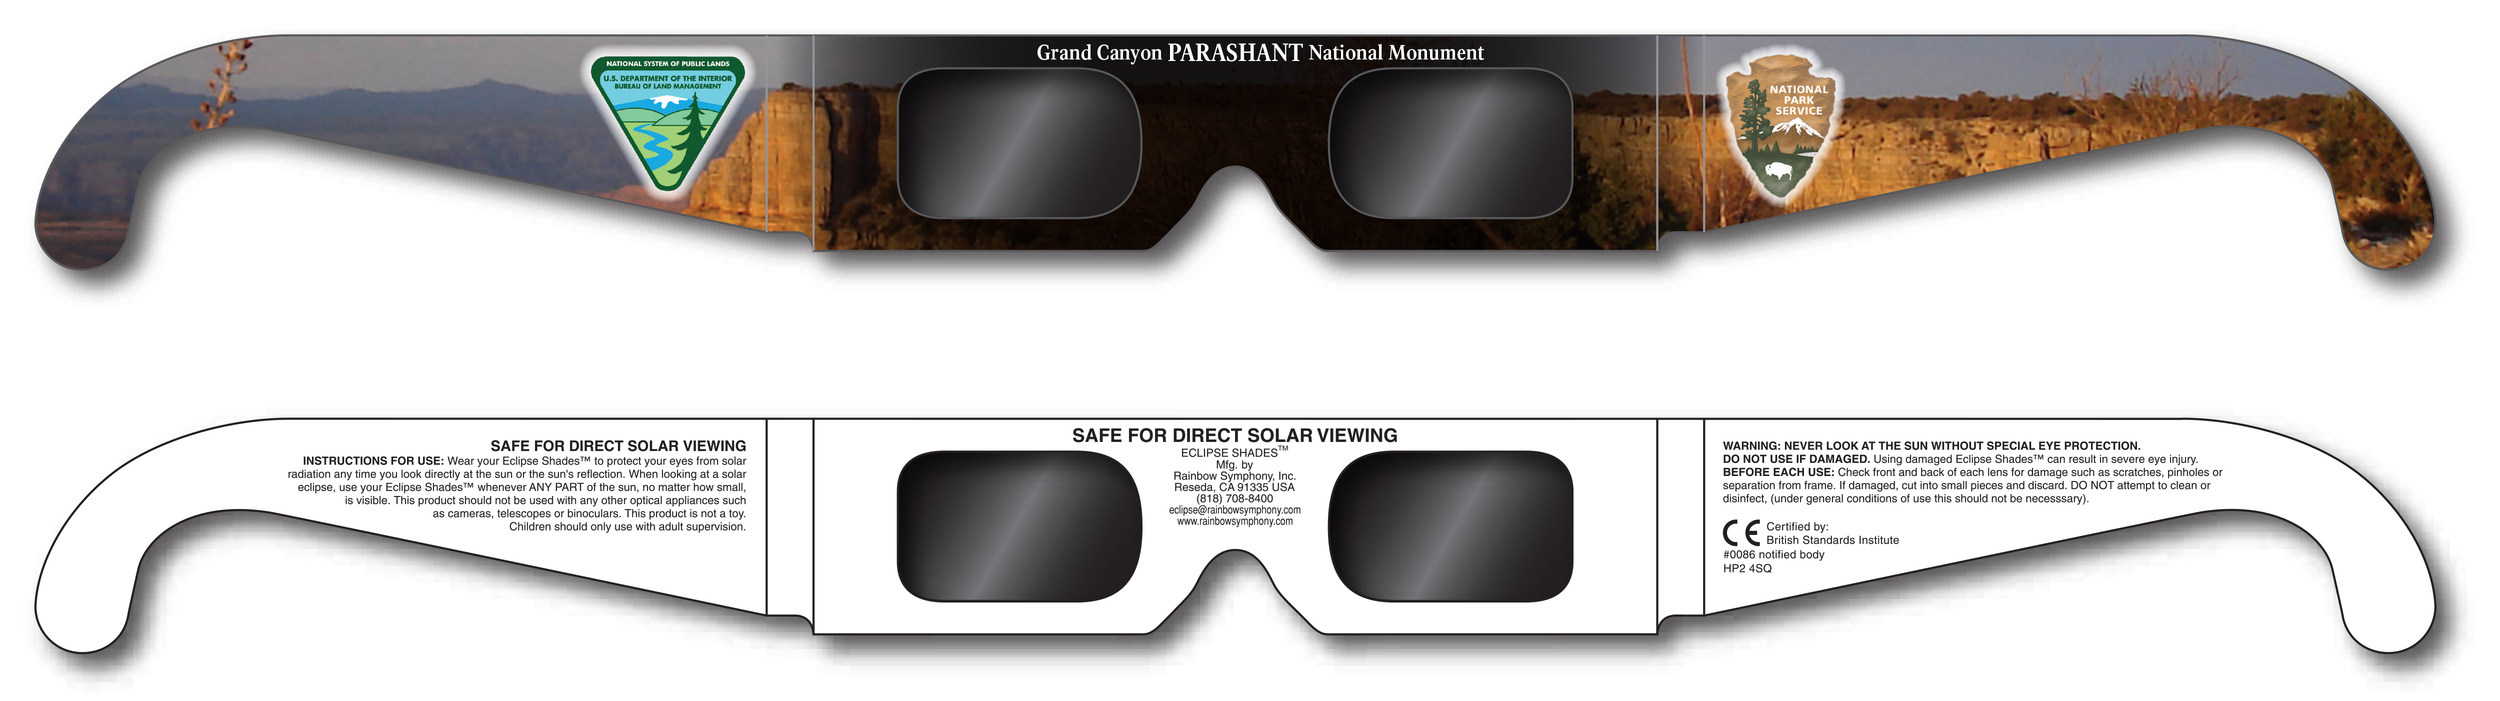 Parashant_National_Monument_Eclipse_Glasses.jpg